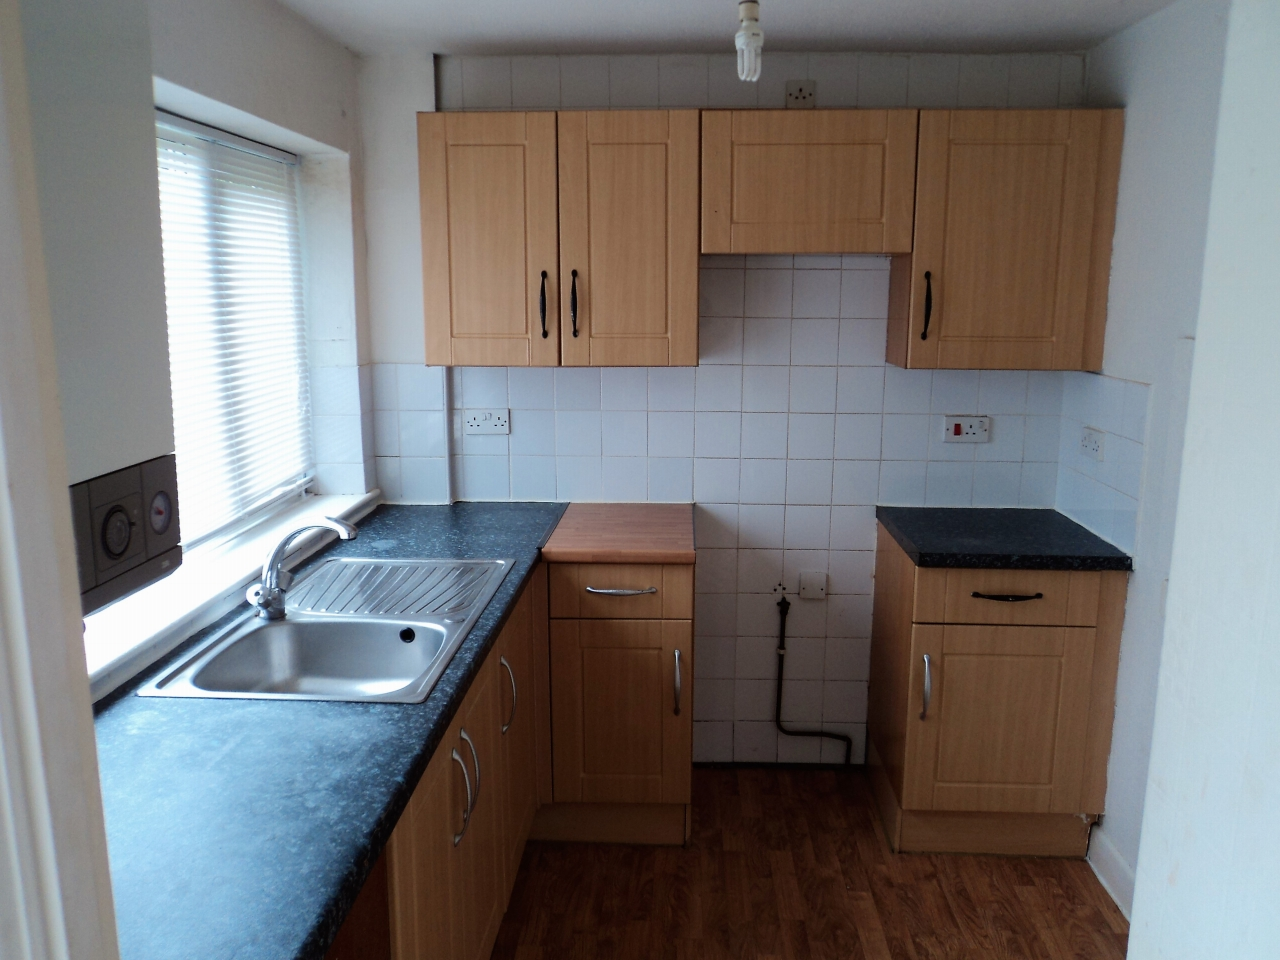 3 Bedroom End Terraced House For Sale - Image 3